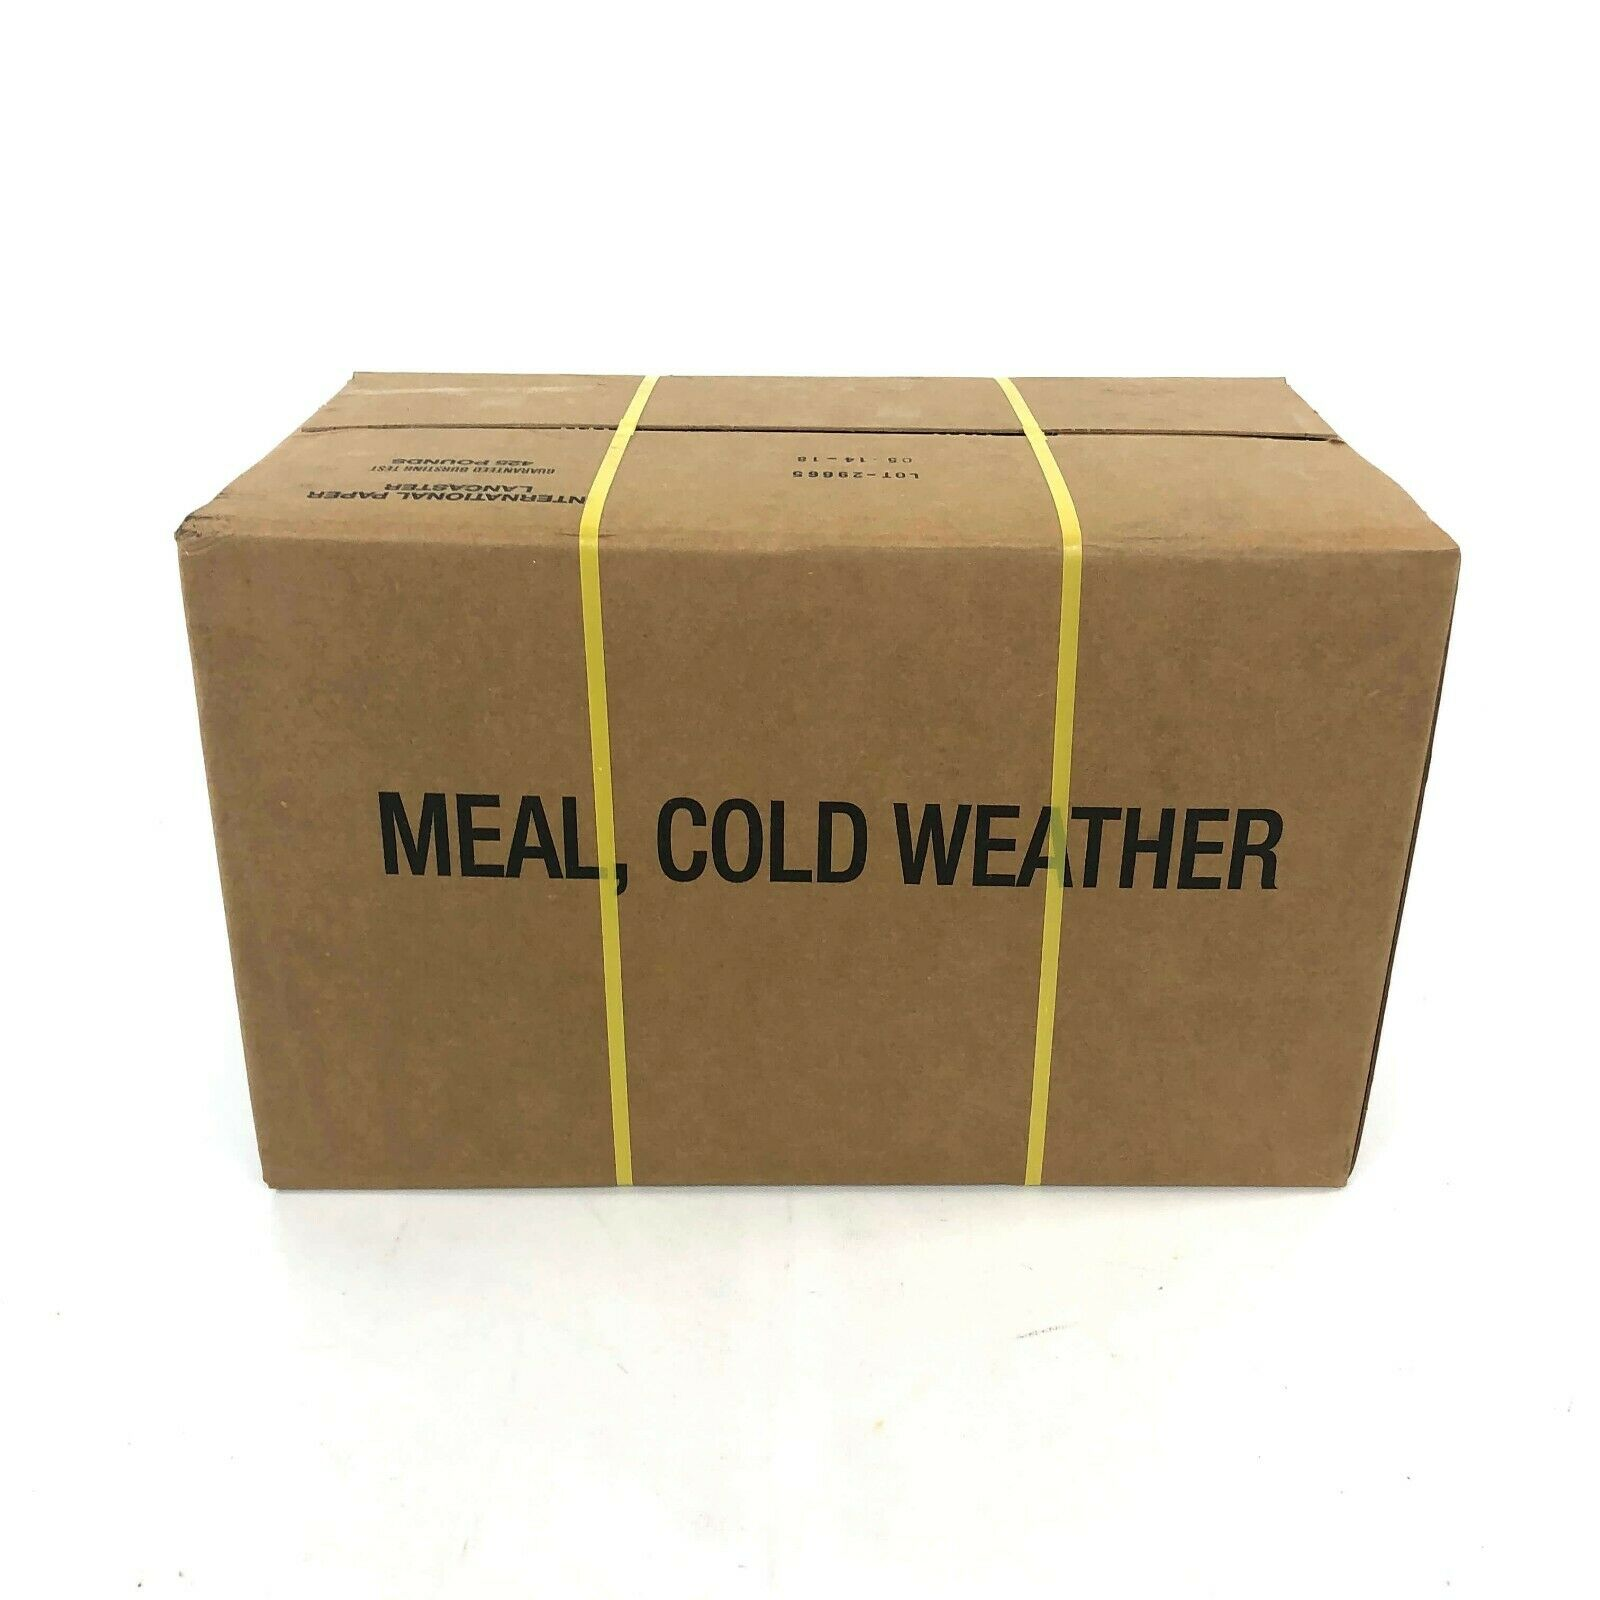 Case of 12 Cold Weather MRE, Army Meals Ready to Eat USGI Freeze Dried Food 2021